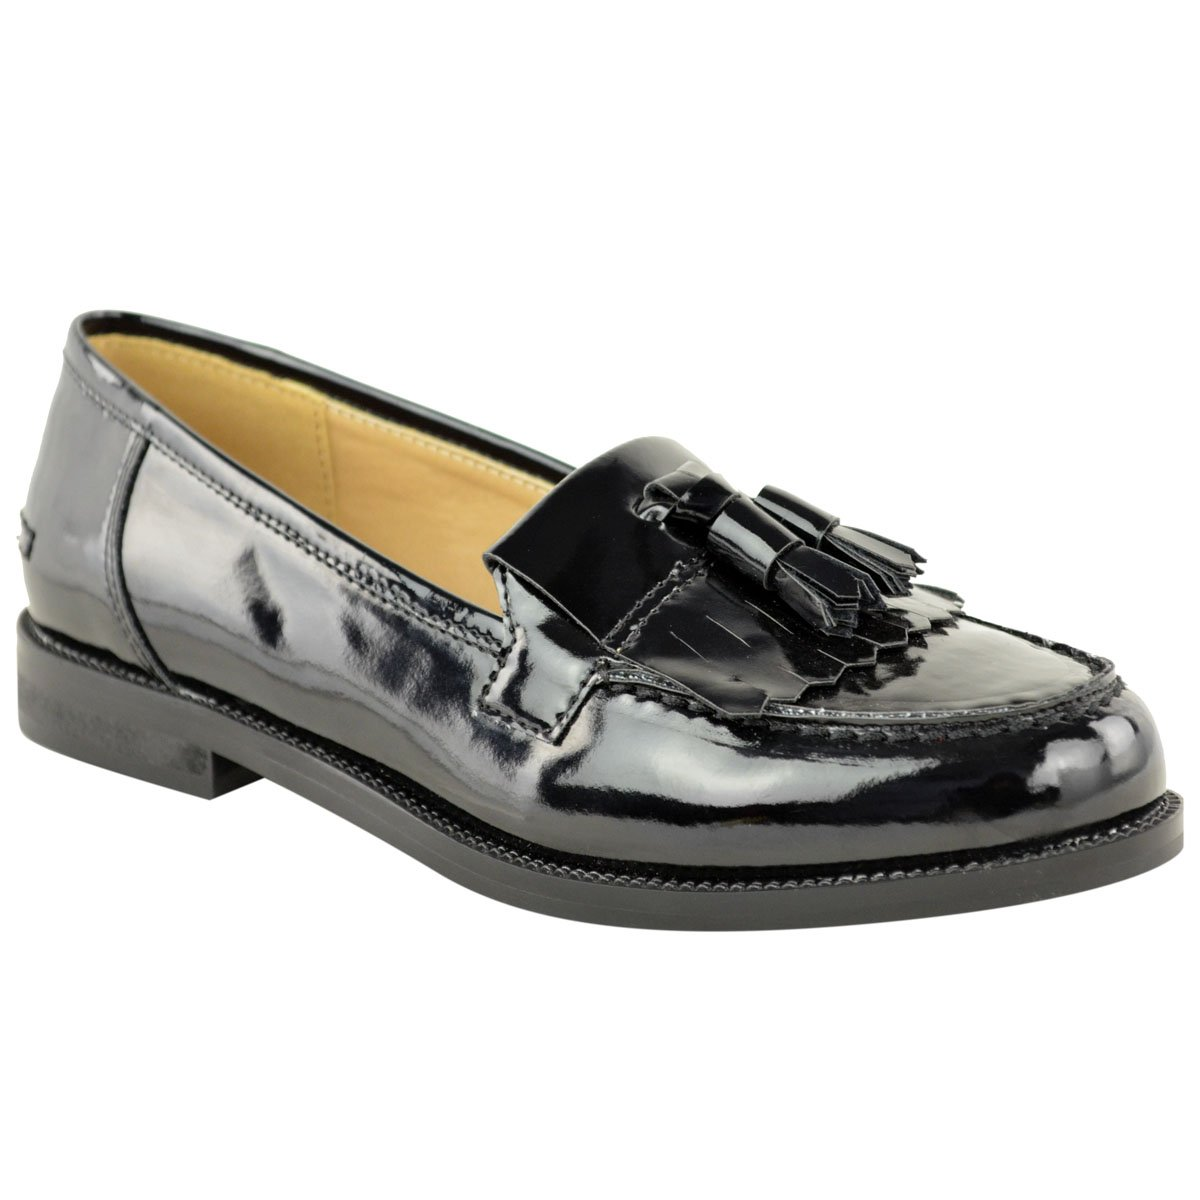 1324288e Fashion Thirsty Womens Loafers Flat Casual Office Work School Fringe Tassel  Dress Shoes Size